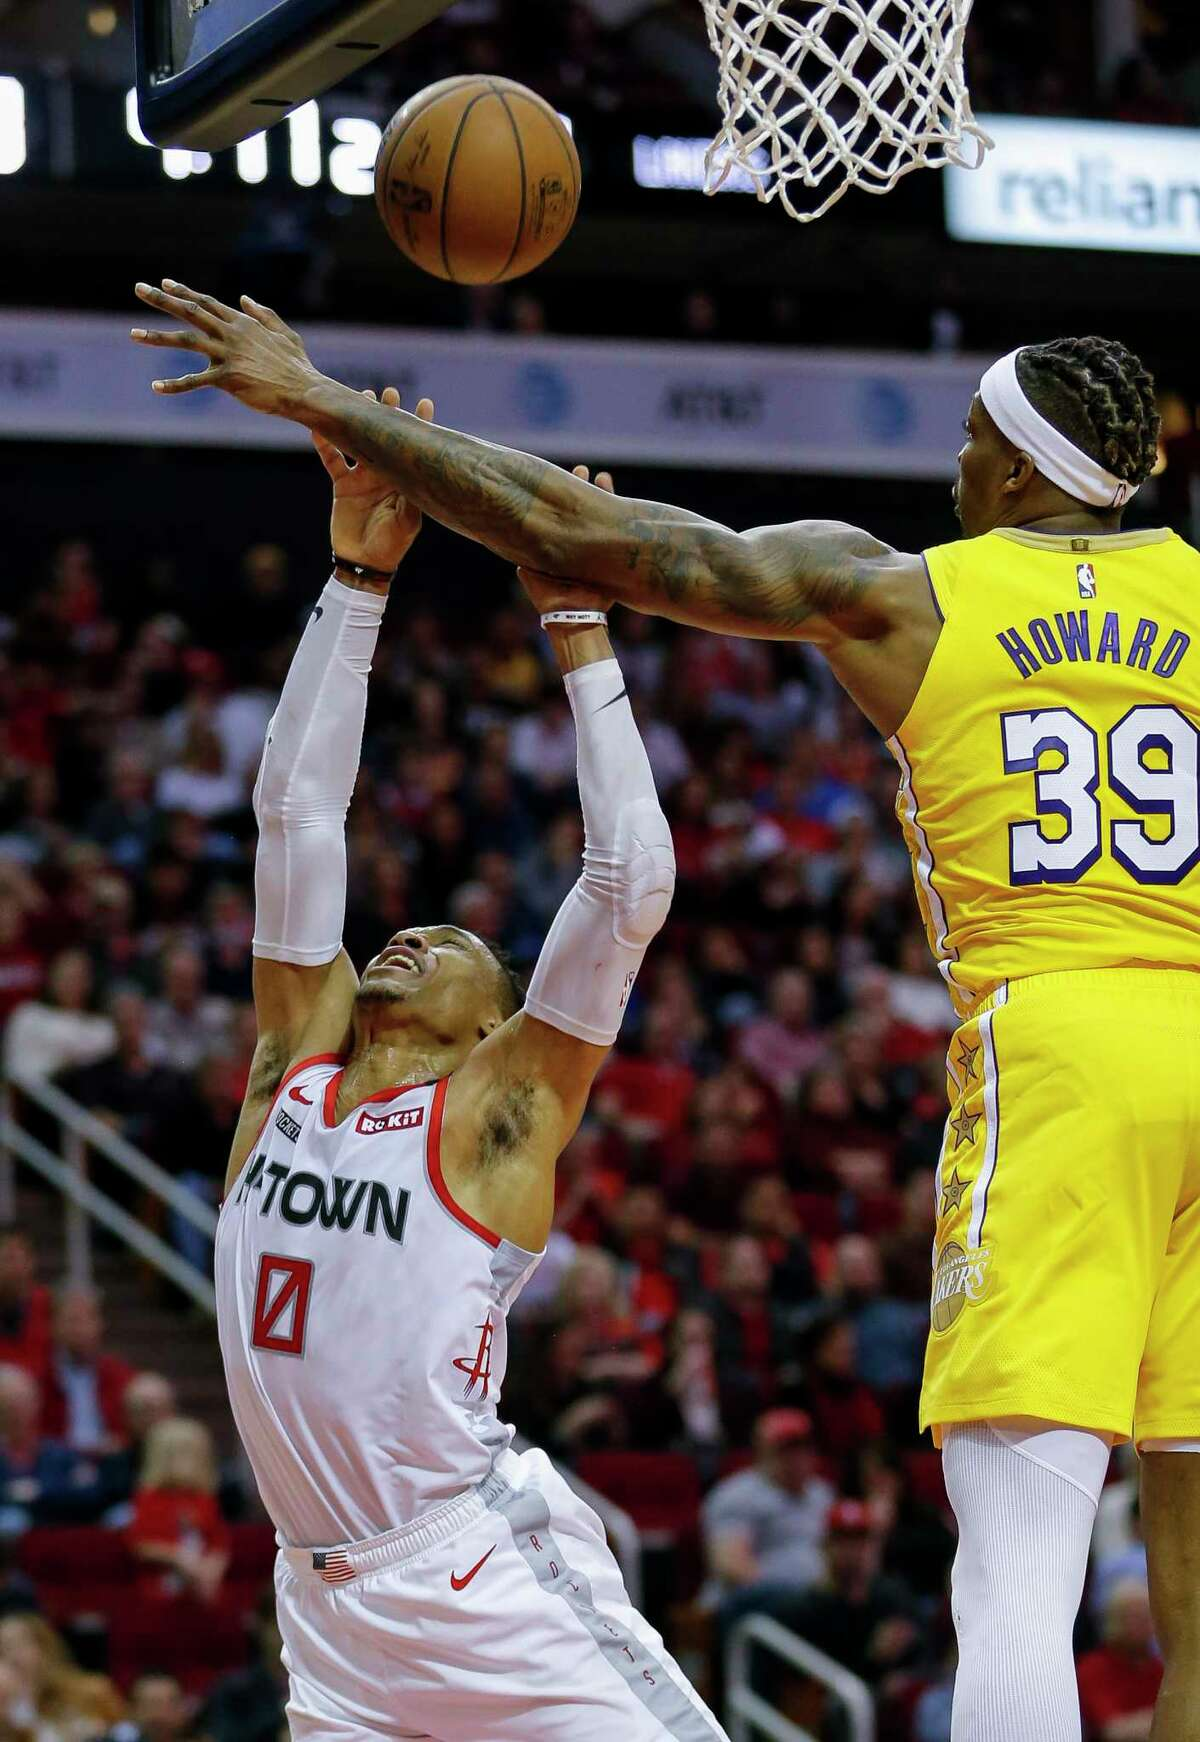 Houston Rockets guard Russell Westbrook (0) makes a basket despite being fouled by Los Angeles Lakers center Dwight Howard (39) during the first half of an NBA game at the Toyota Center on Saturday, Jan. 18, 2020.